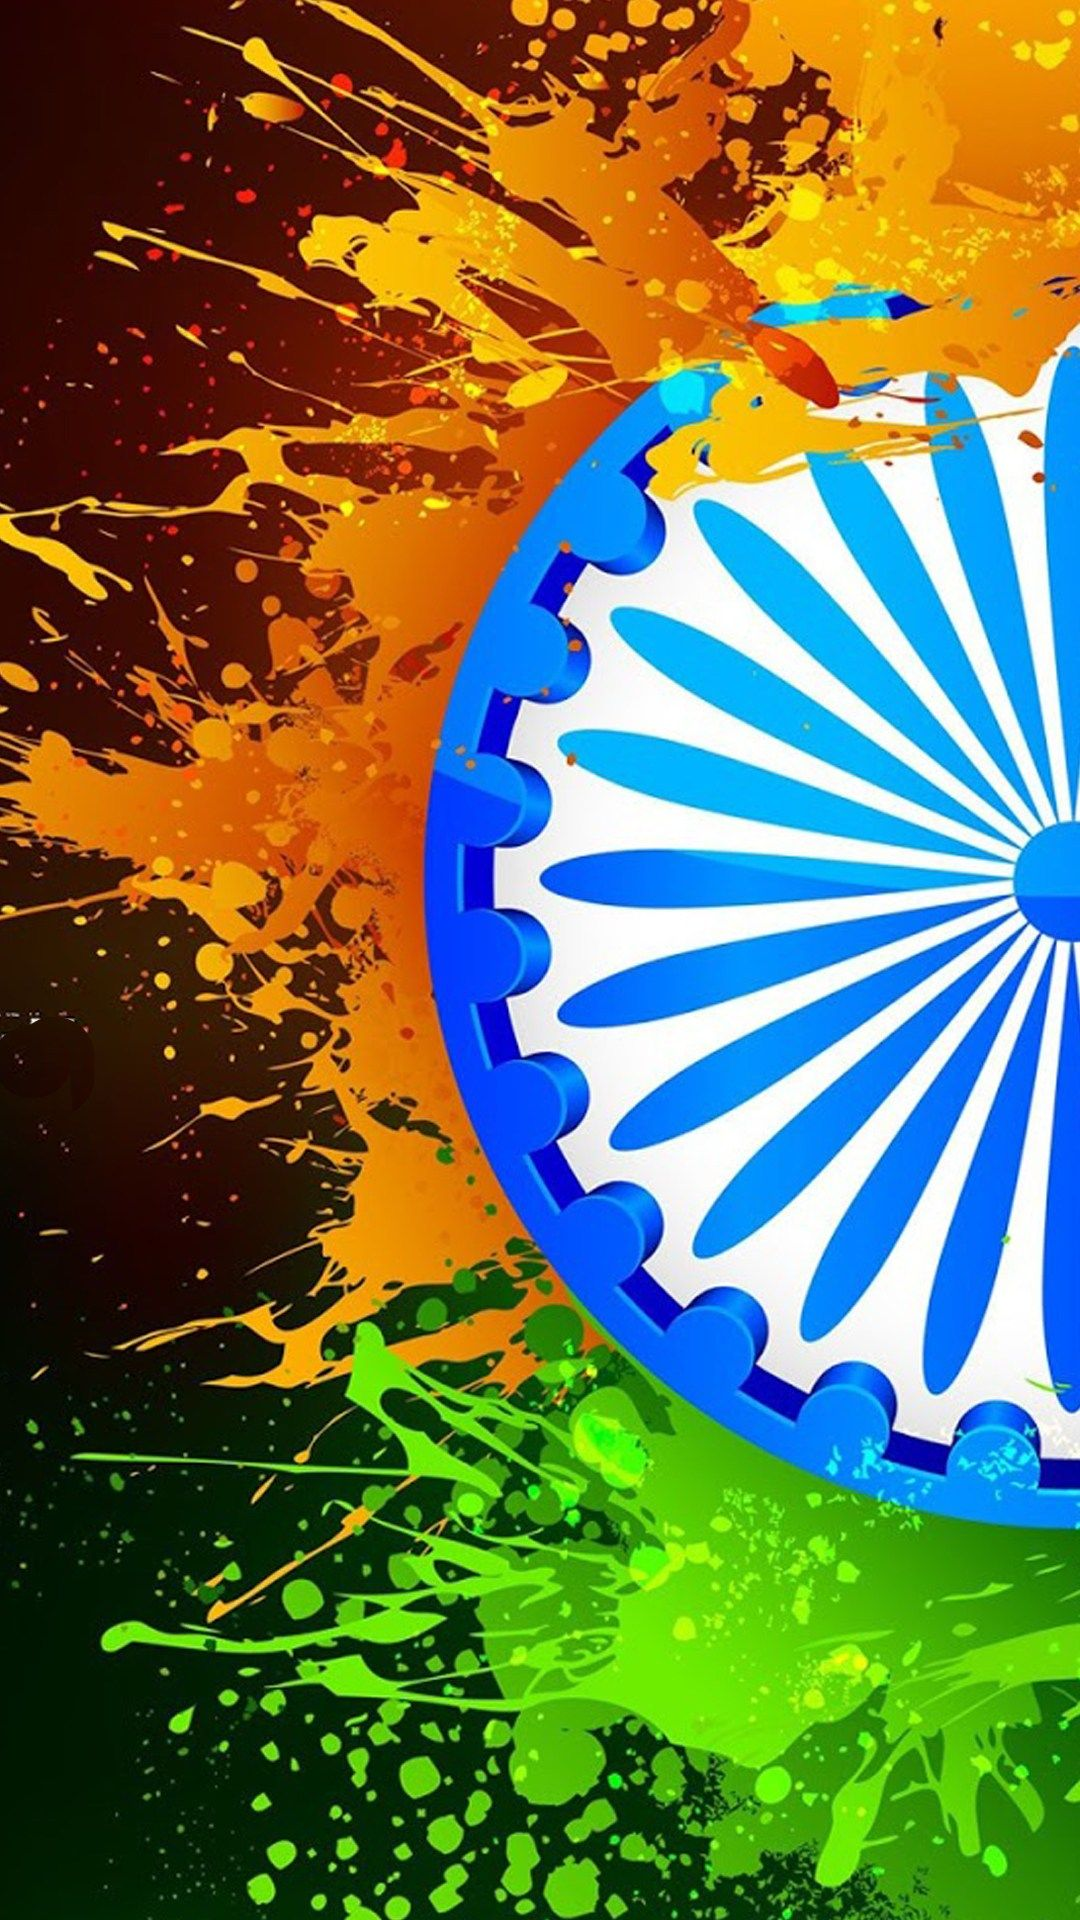 National Flag Images For Whatsapp 04 Of 10 With India Republic Day Wallpaper In 2020 National Flag India India Flag Indian Flag Wallpaper